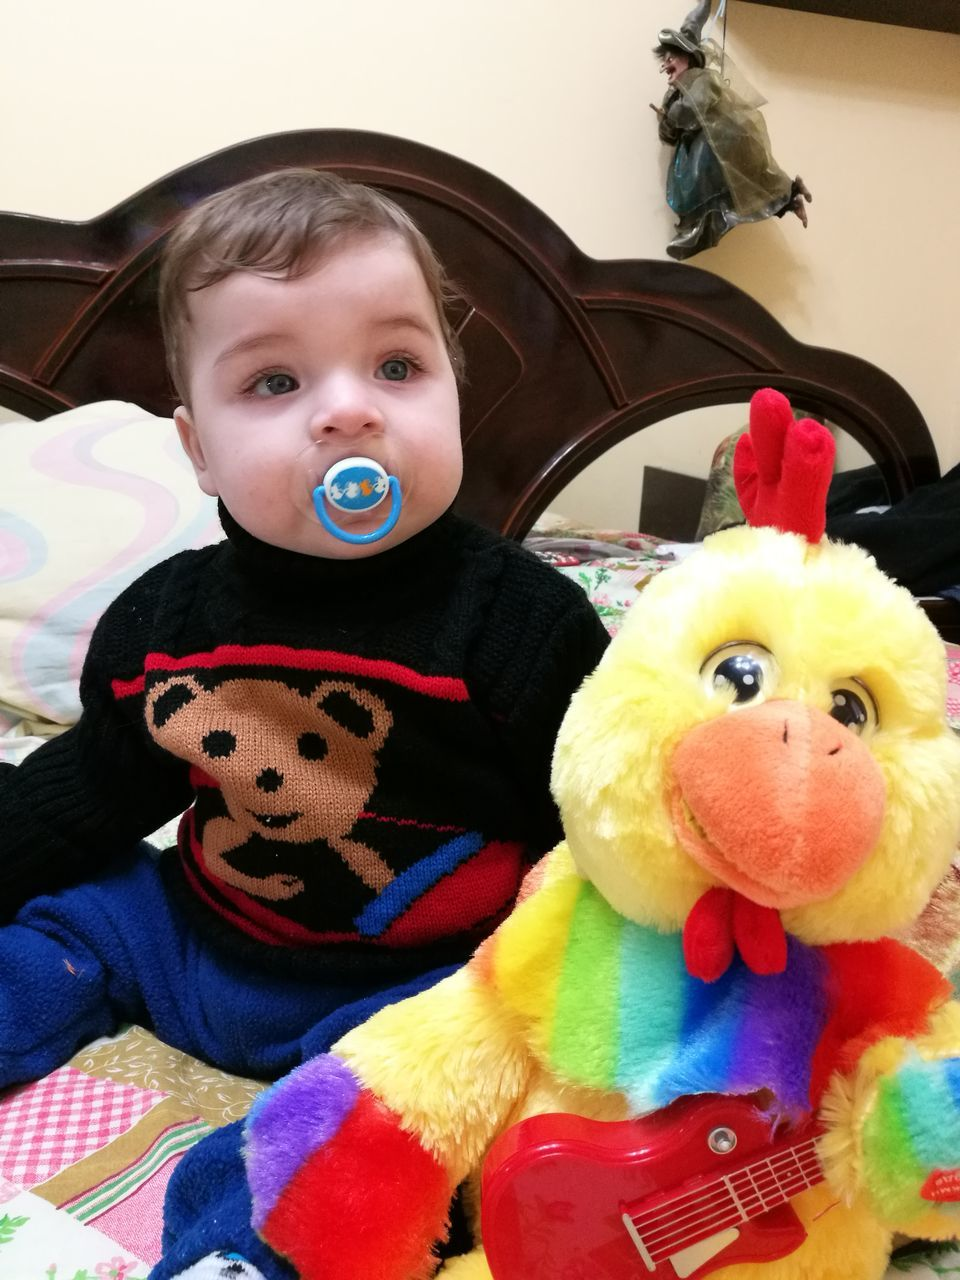 childhood, toy, stuffed toy, animal representation, innocence, teddy bear, looking at camera, cute, real people, boys, indoors, portrait, home interior, doll, close-up, lifestyles, one person, smiling, pacifier, day